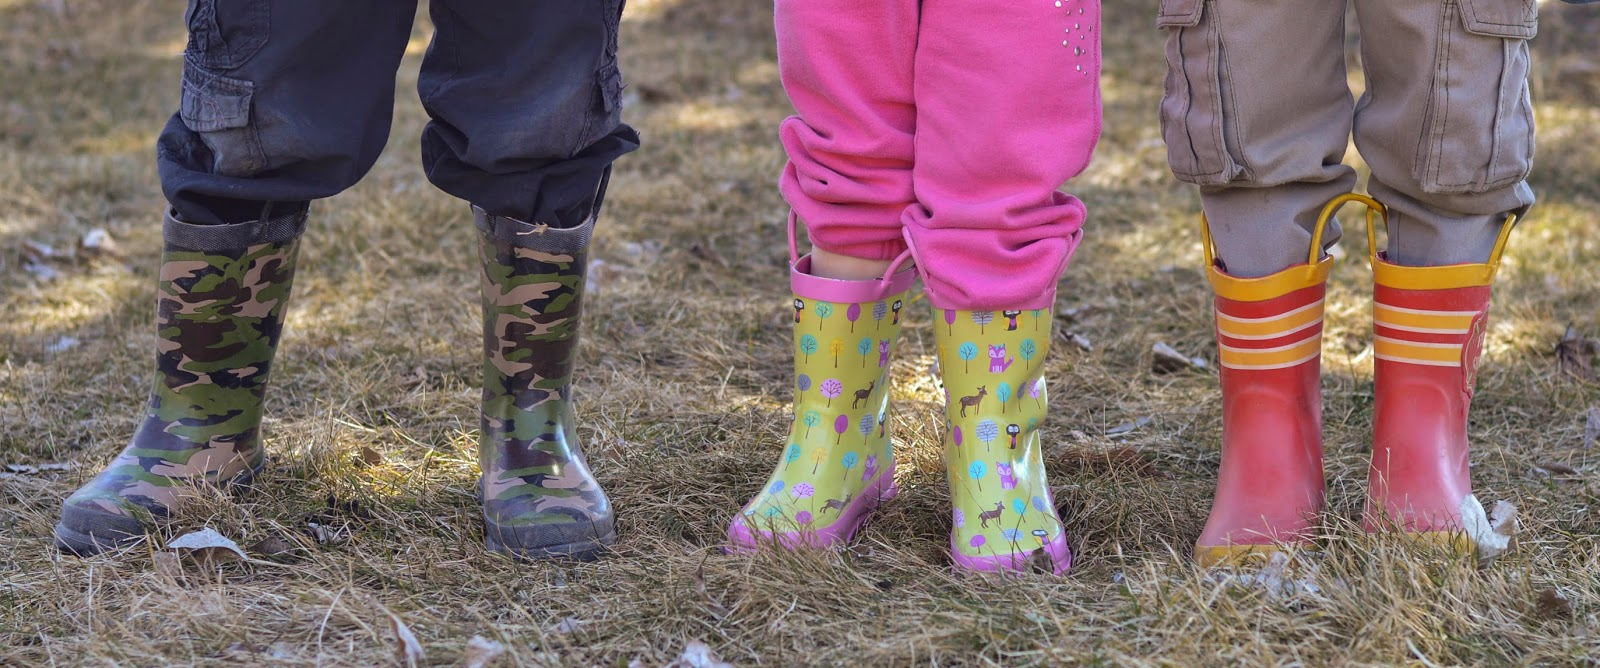 siblings in mud boots